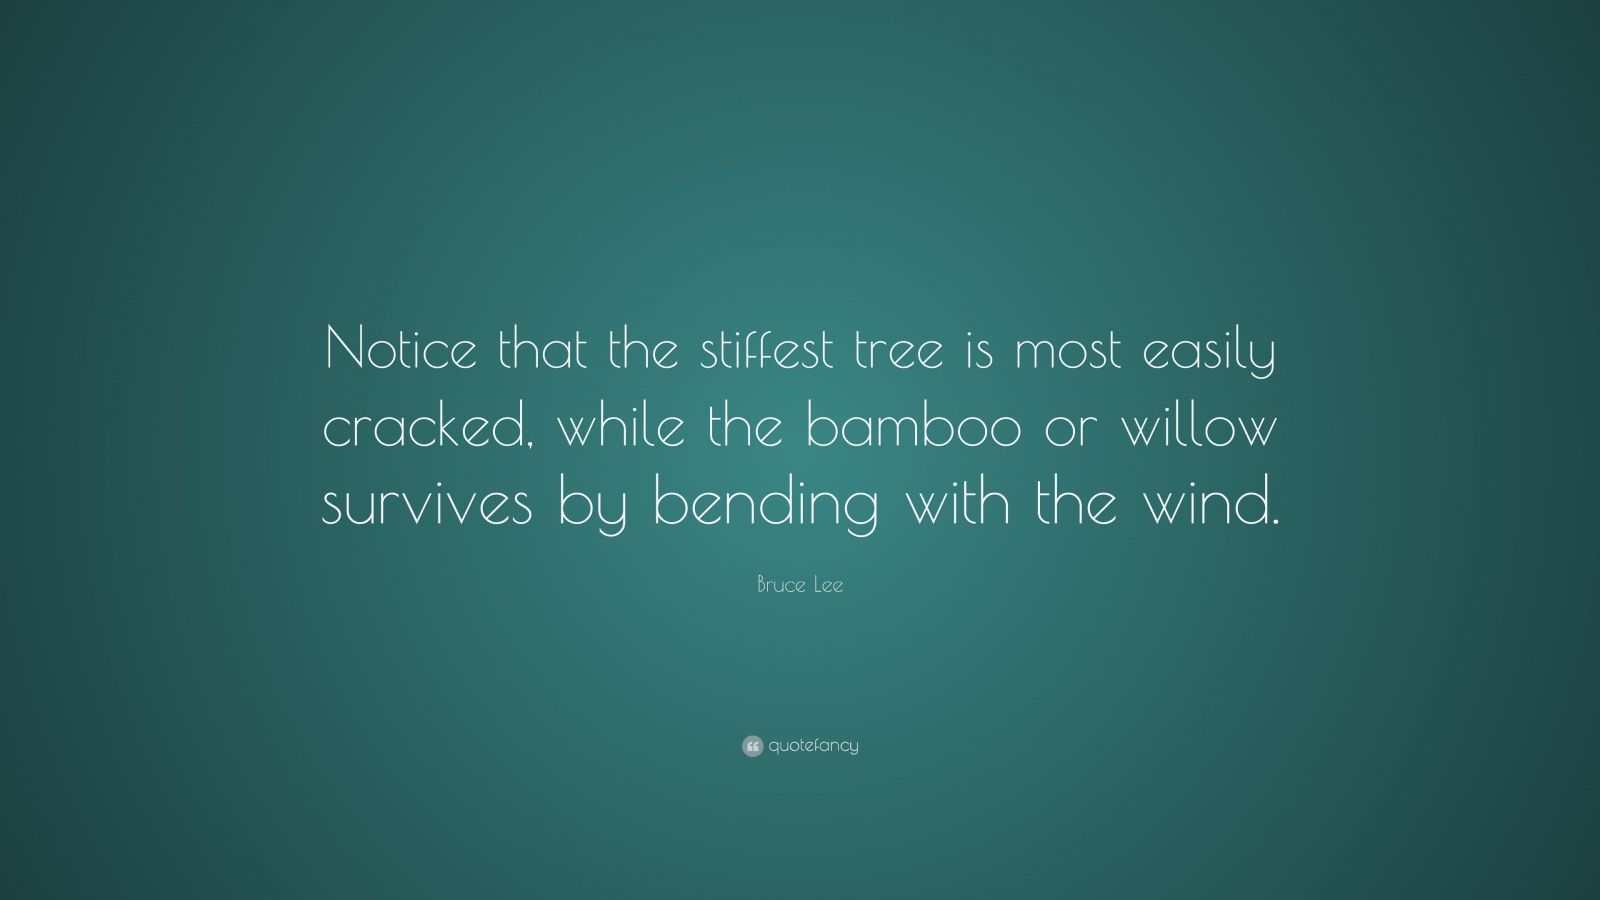 """Bruce Lee Quote: """"Notice that the stiffest tree is most easily cracked, while the bamboo or willow survives by bending with the wind."""""""